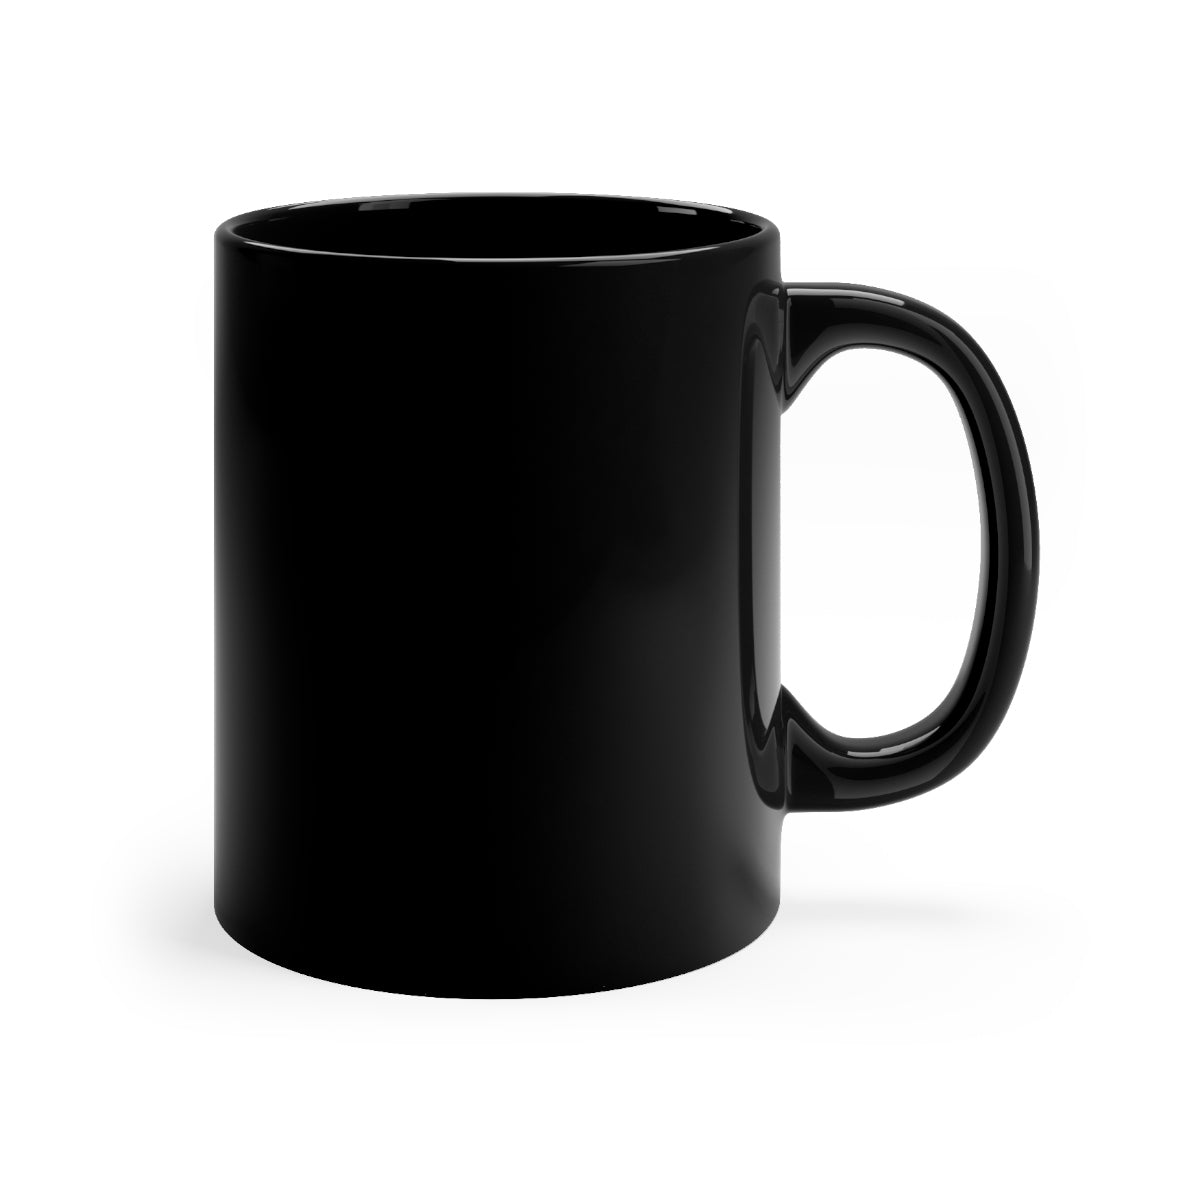 Blessed Are The Black mug 11oz